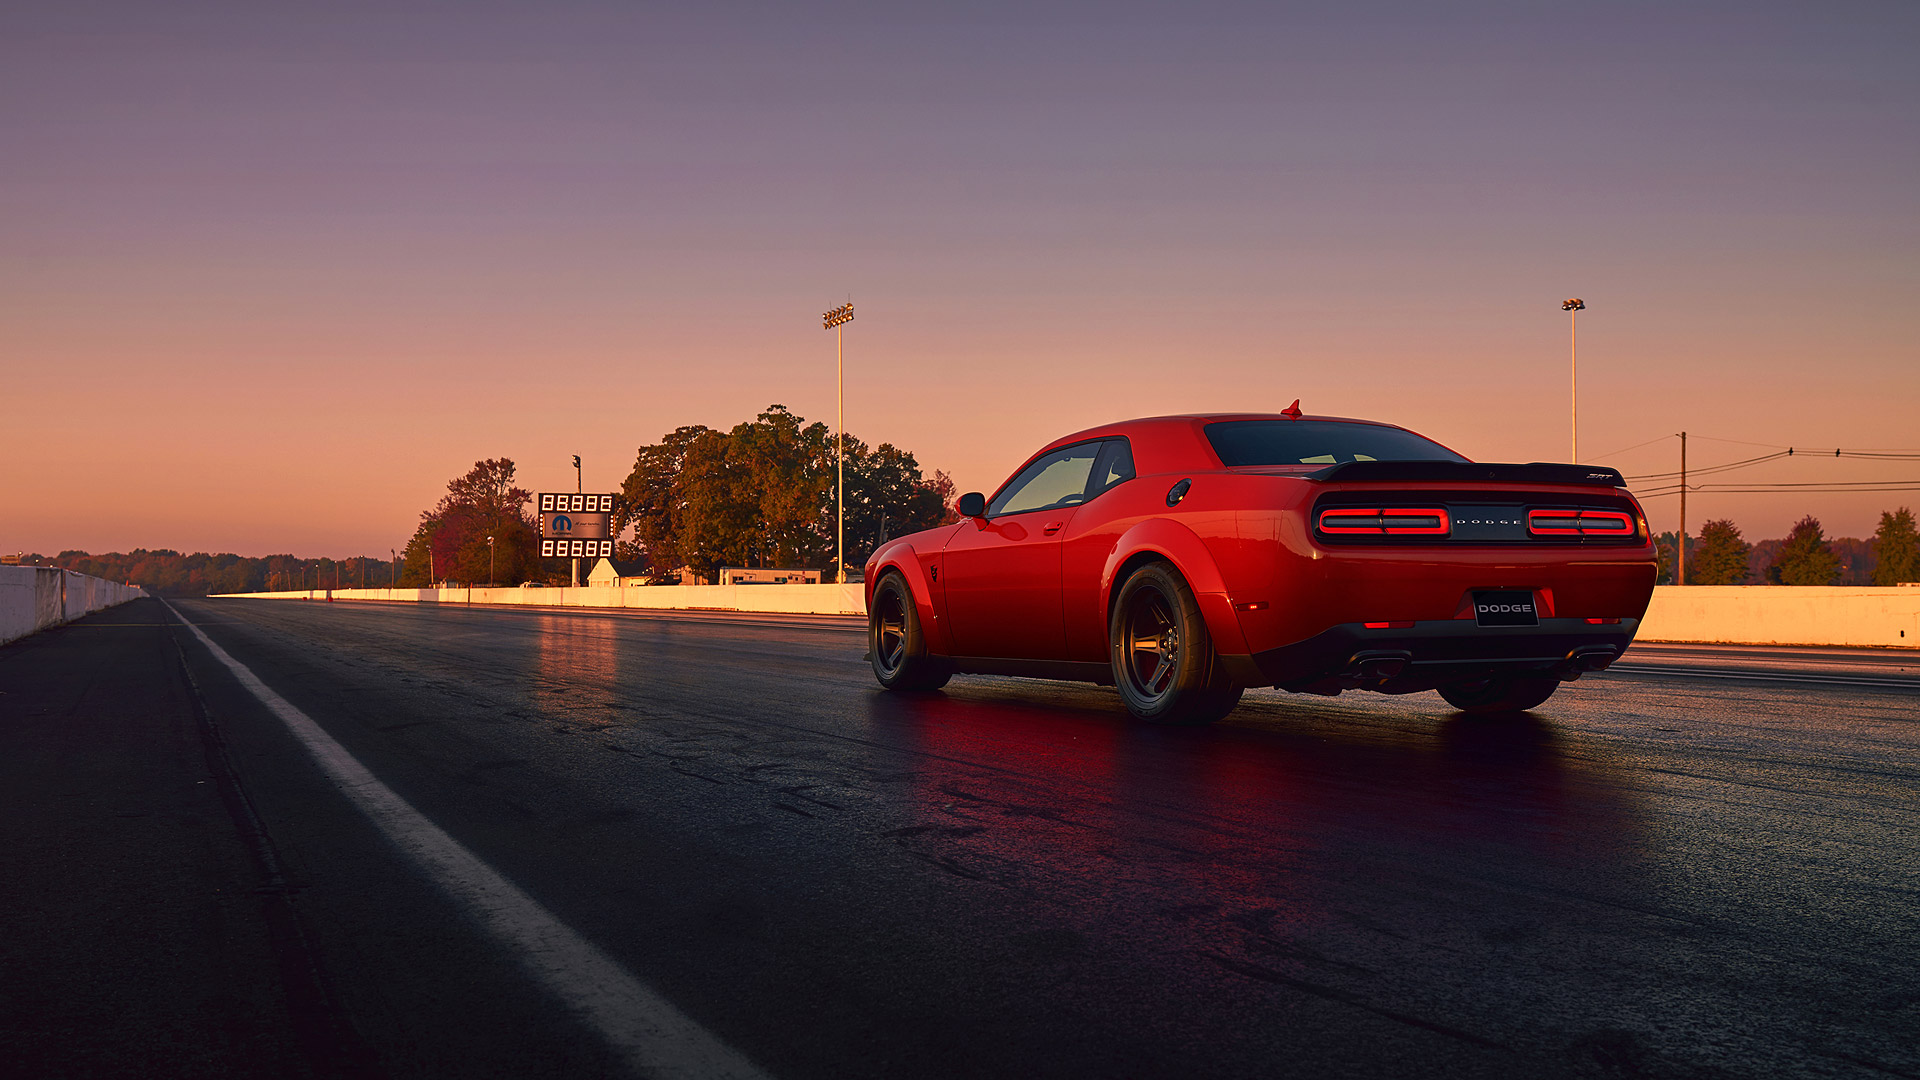 1920x1080 - Dodge Challenger Rallye Wallpapers 3